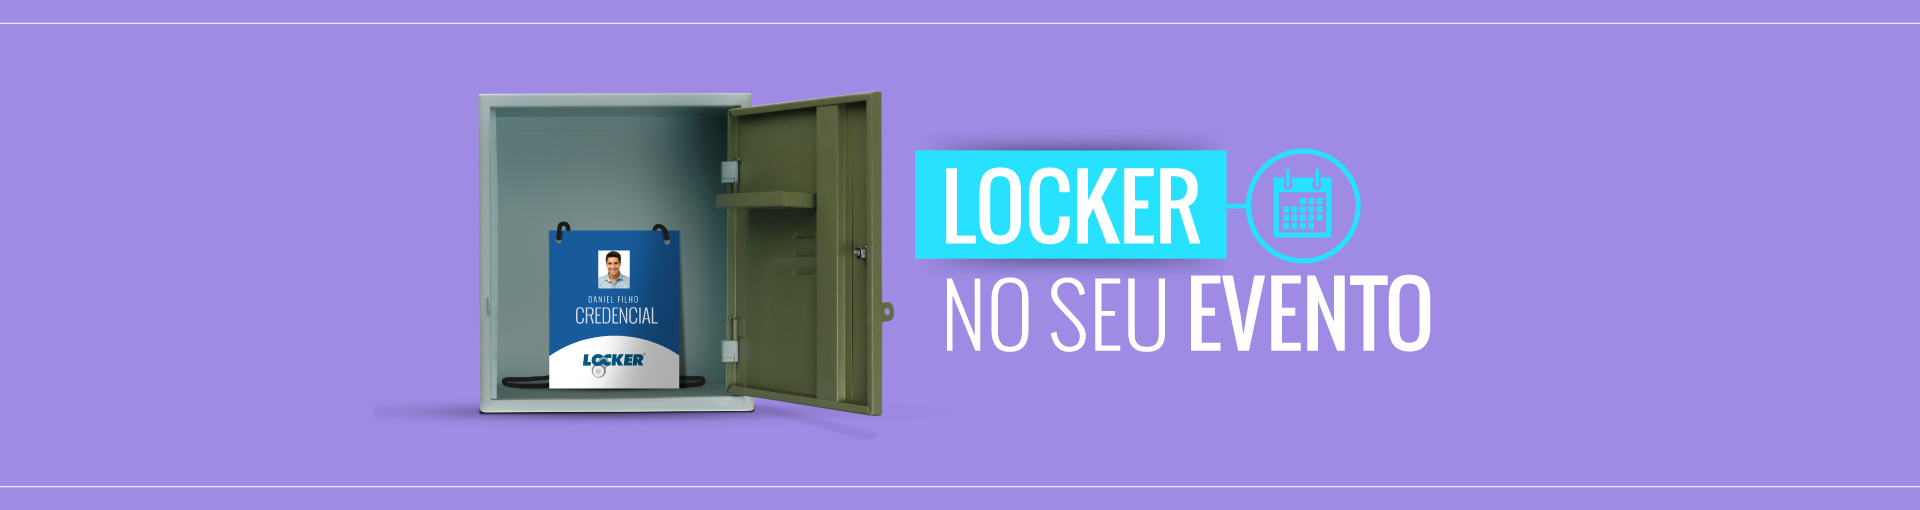 Locker-Header-Locker-no-seu-Evento